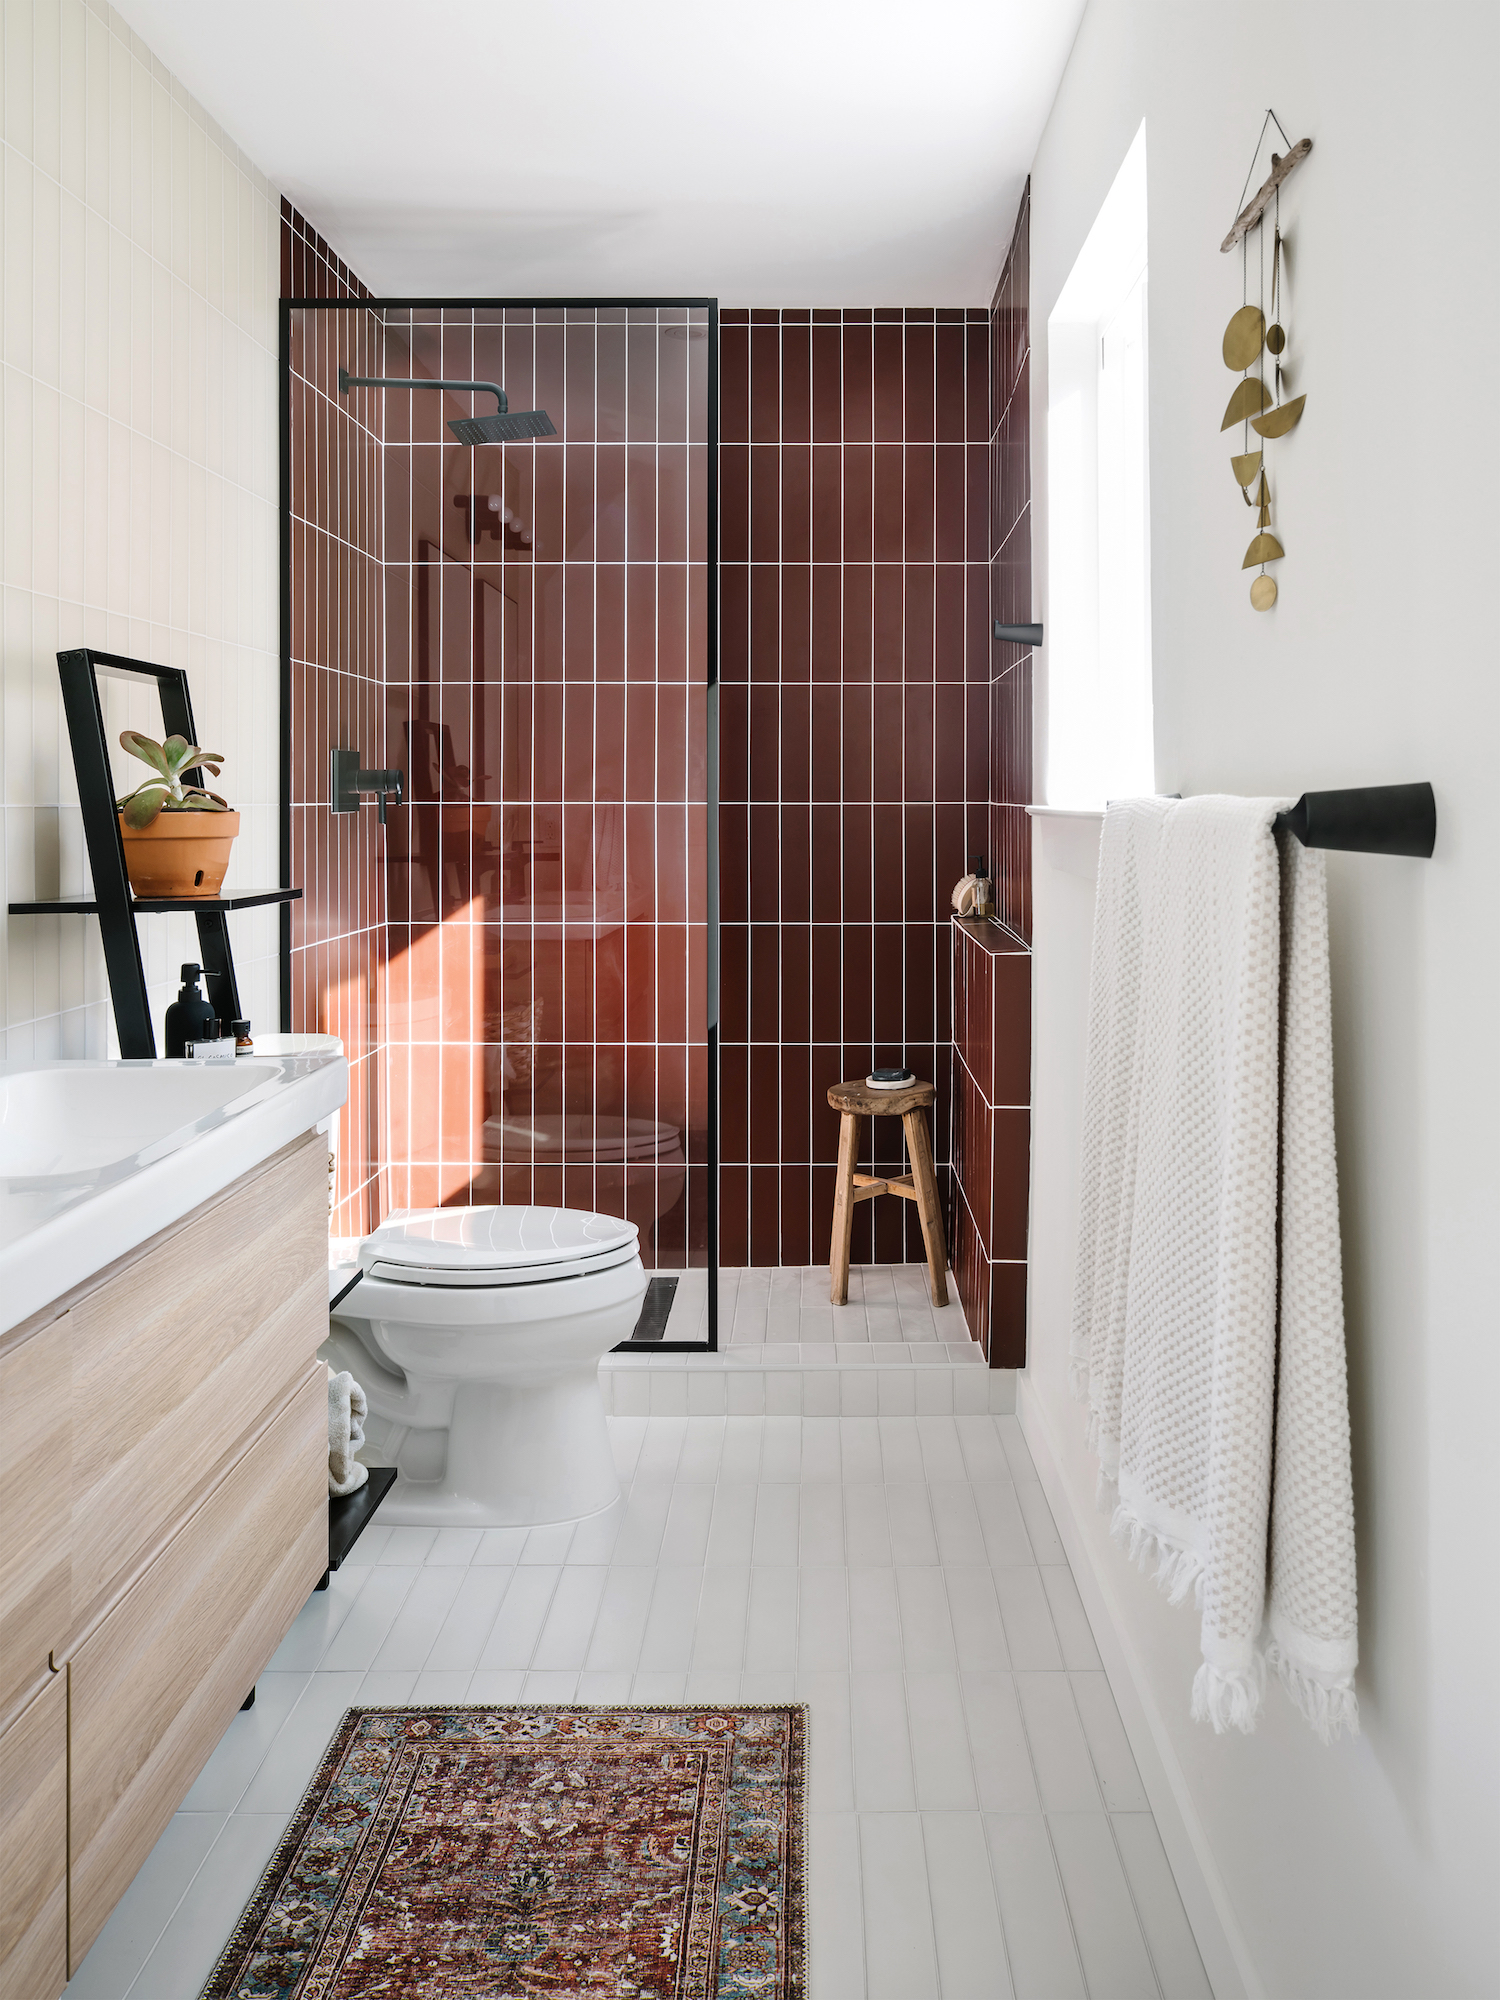 Lauren And Chase's Master Bathroom Remodel Reveal